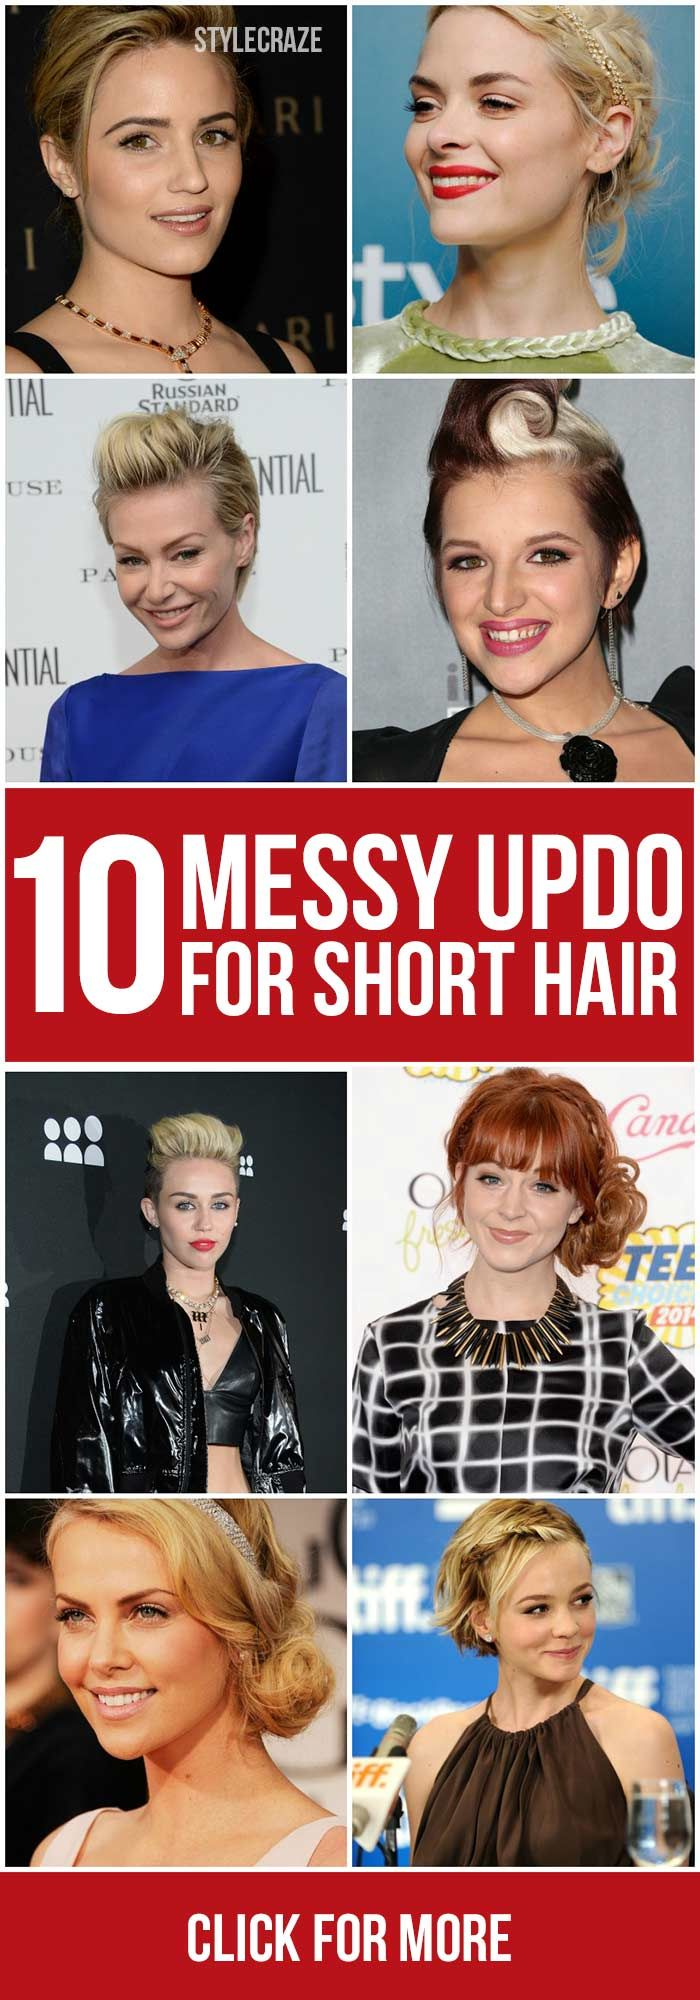 We all want to look stylish and trendy, don't we? Want to update your current hairstyle? Then try out these 10 messy updos for short hair that are the new hot favorites!